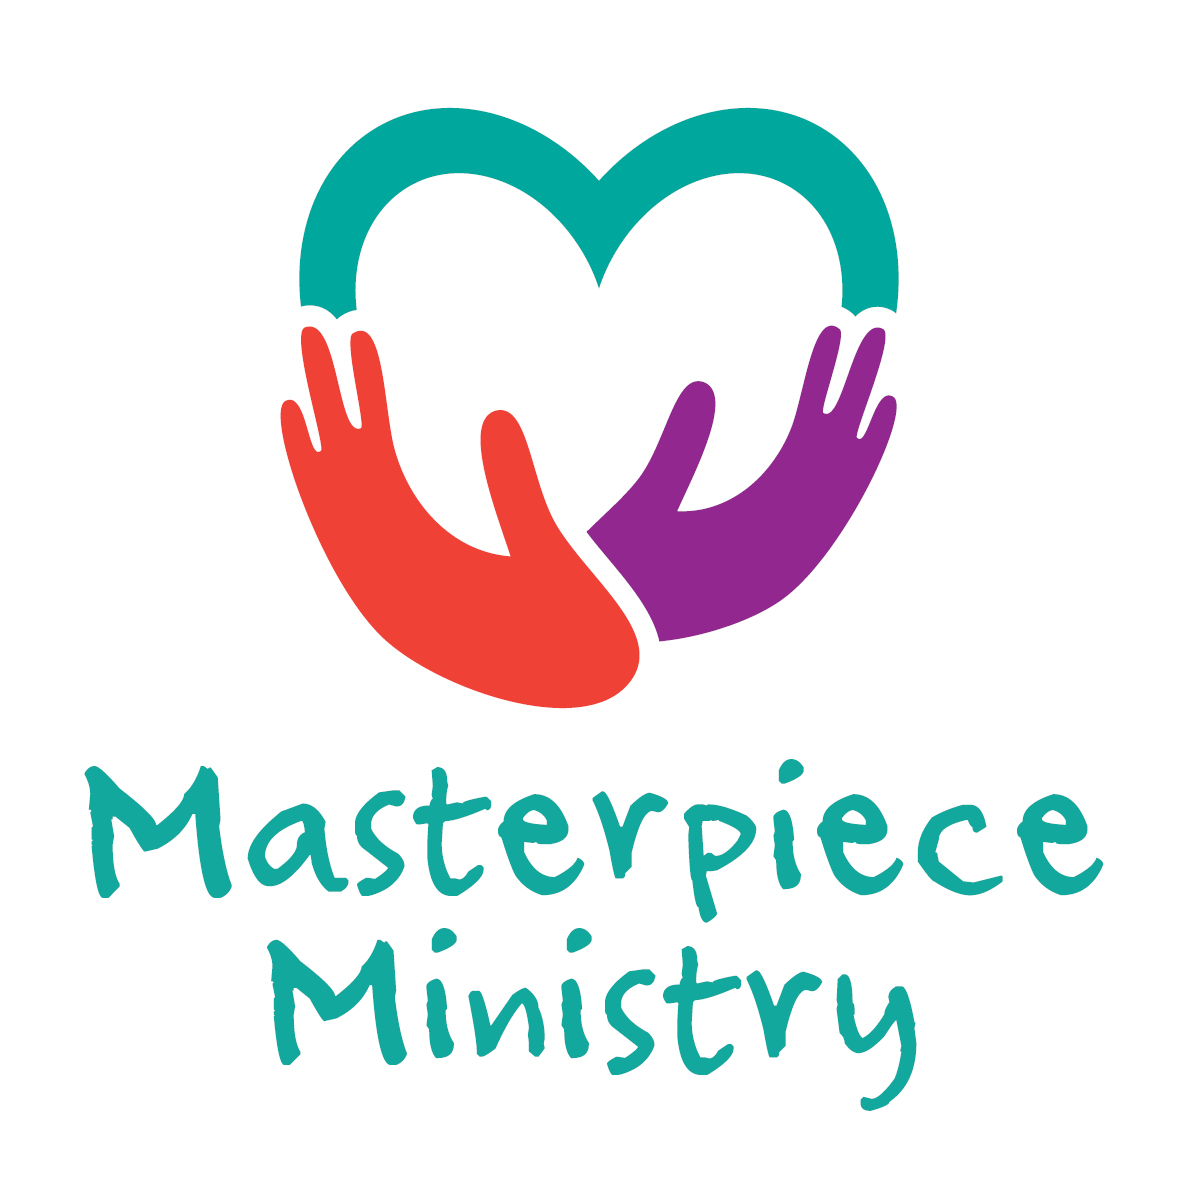 Masterpiece Ministry logo